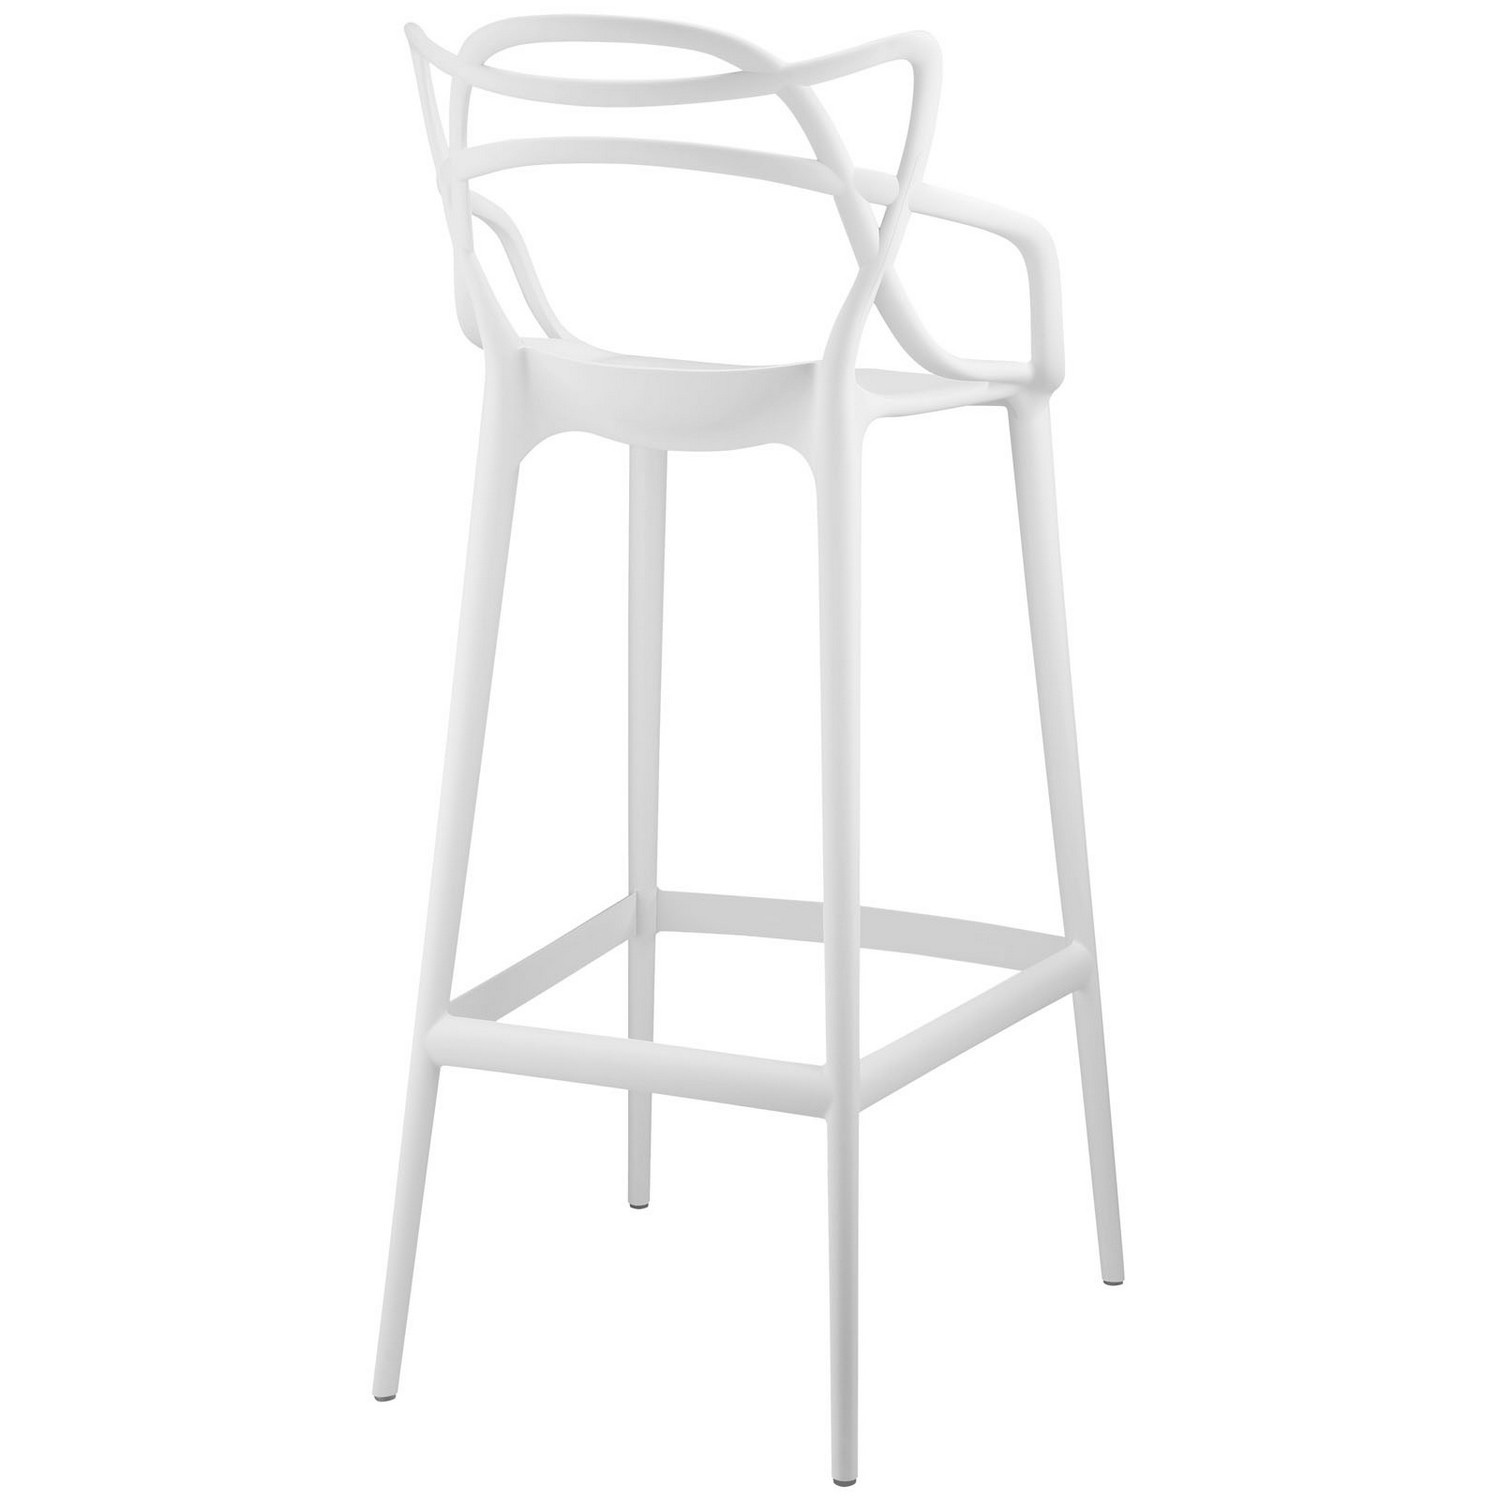 Modway Entangled Bar Stool - White